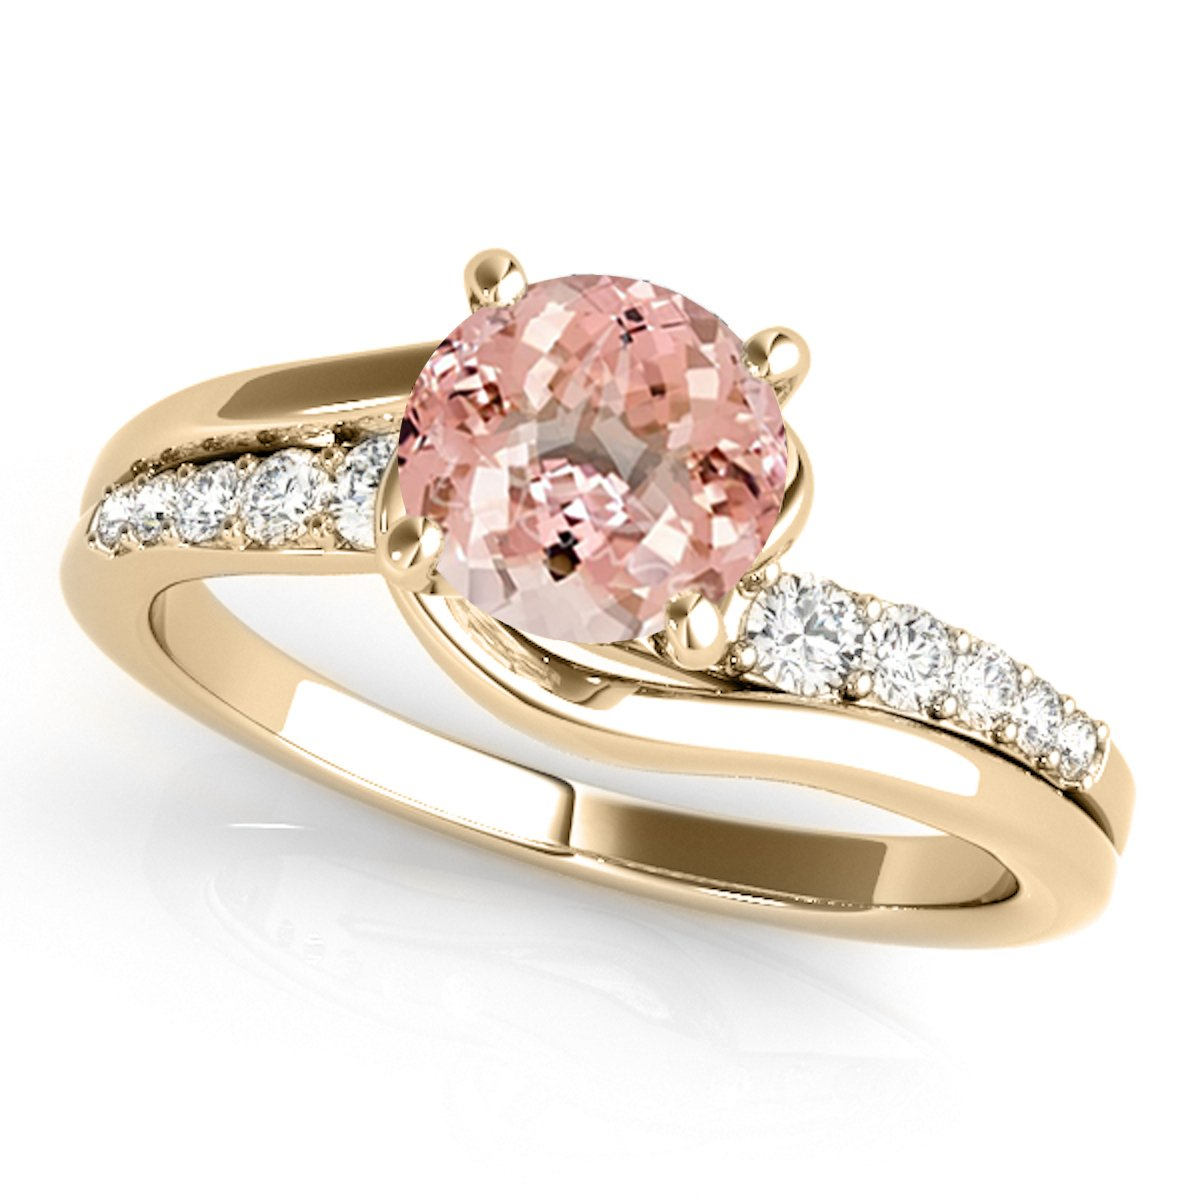 1.15 Ct. Halo Morganite And Diamond Engagement Ring Crafted In 14k Solid Yellow Gold